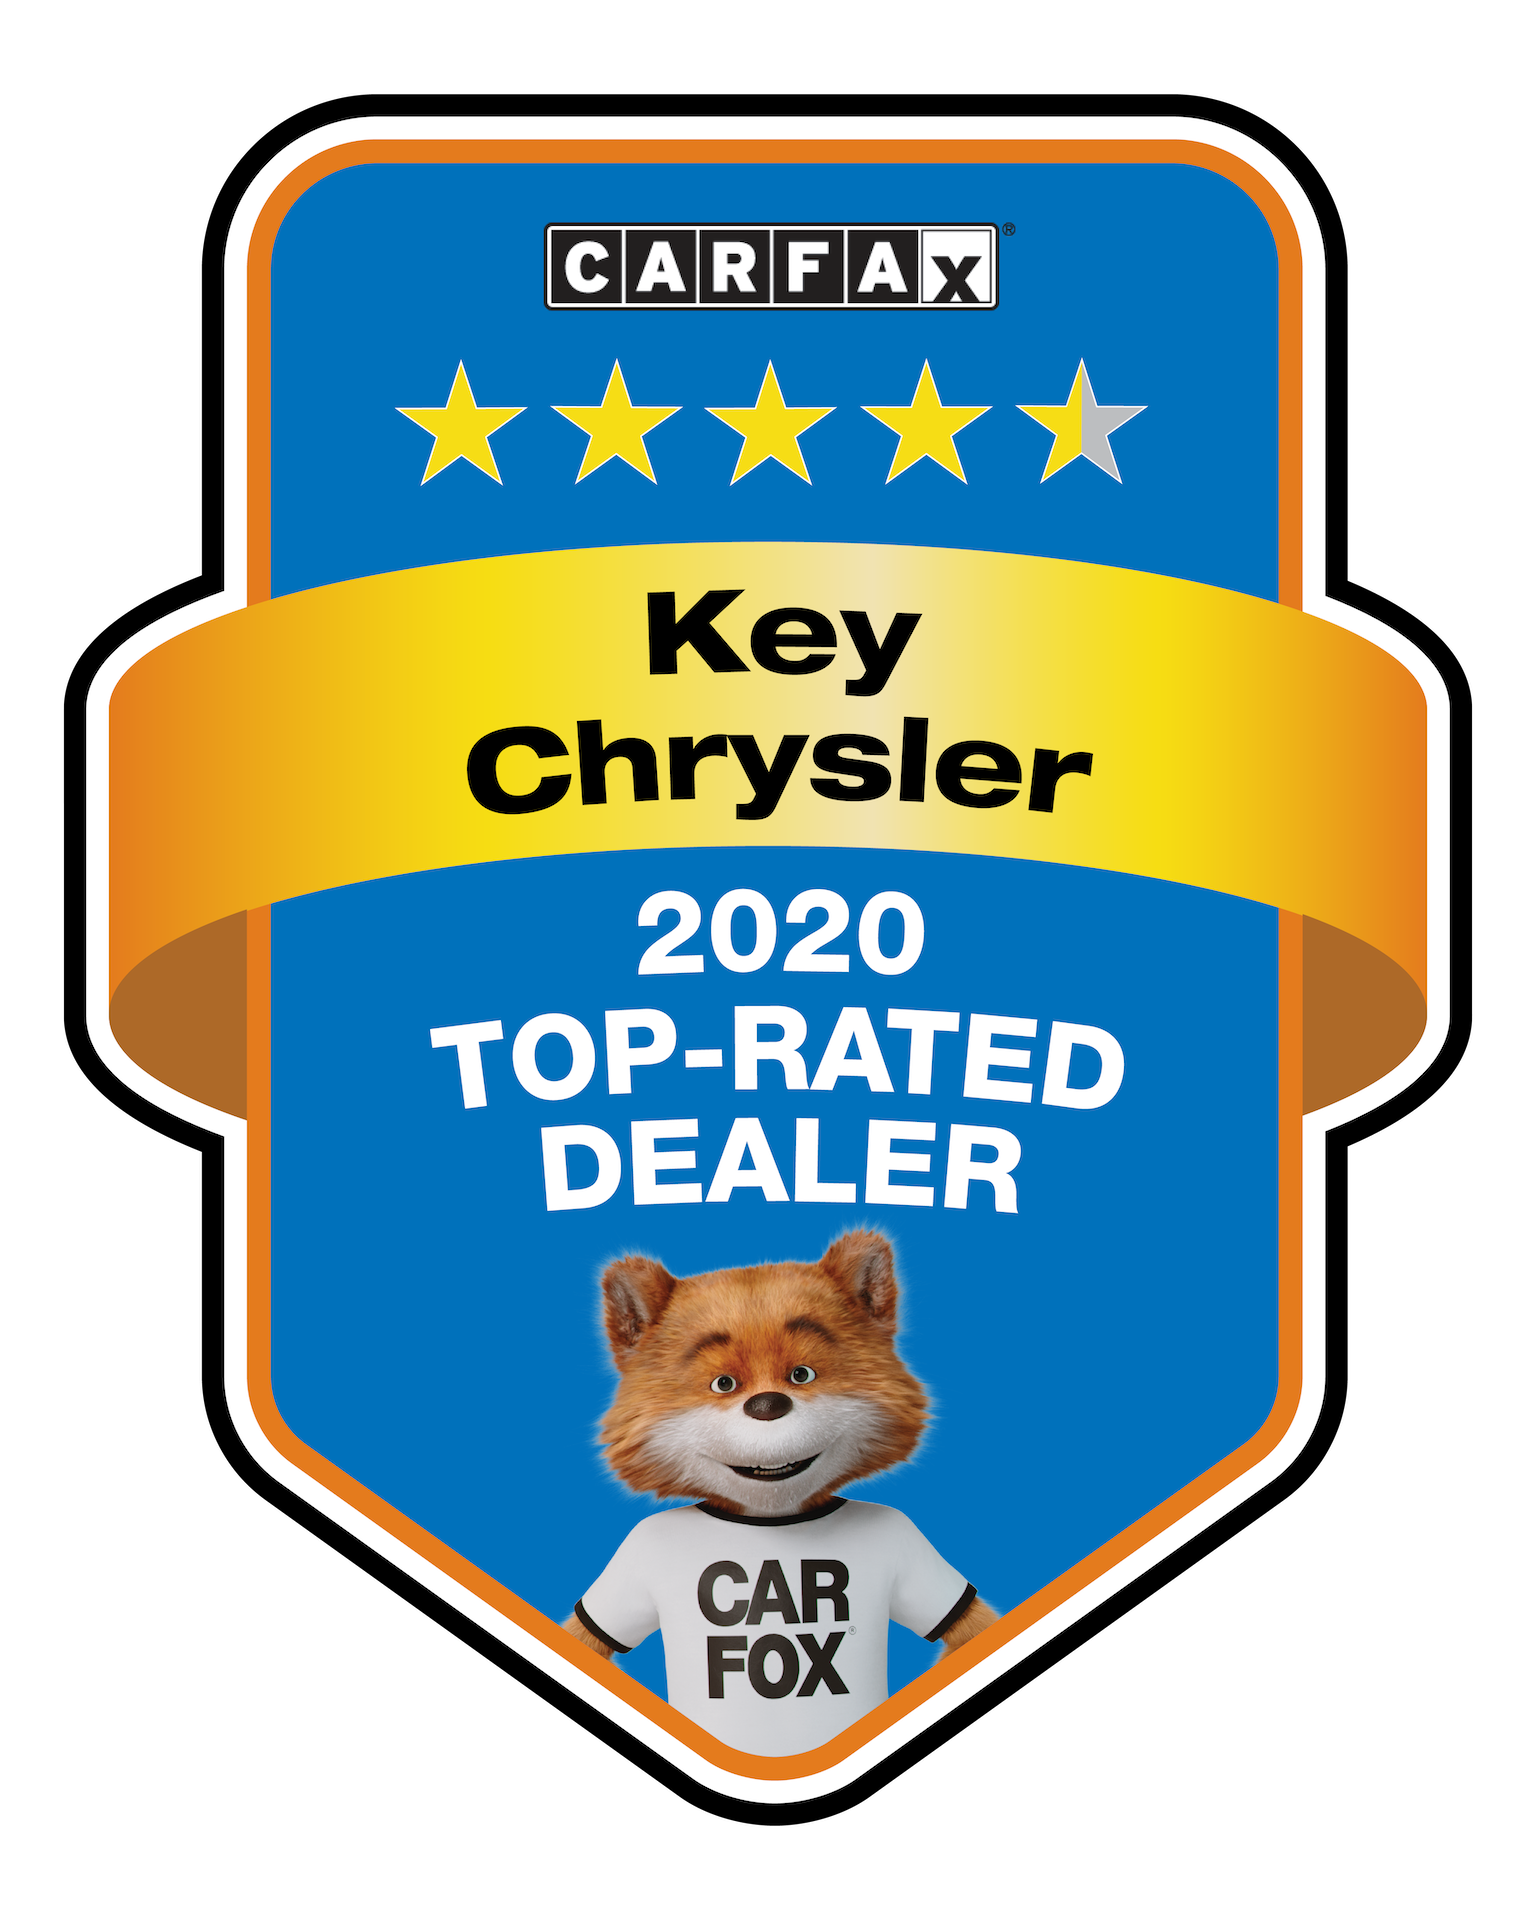 Key Chrysler 2020 Top Rated Dealer CarFax